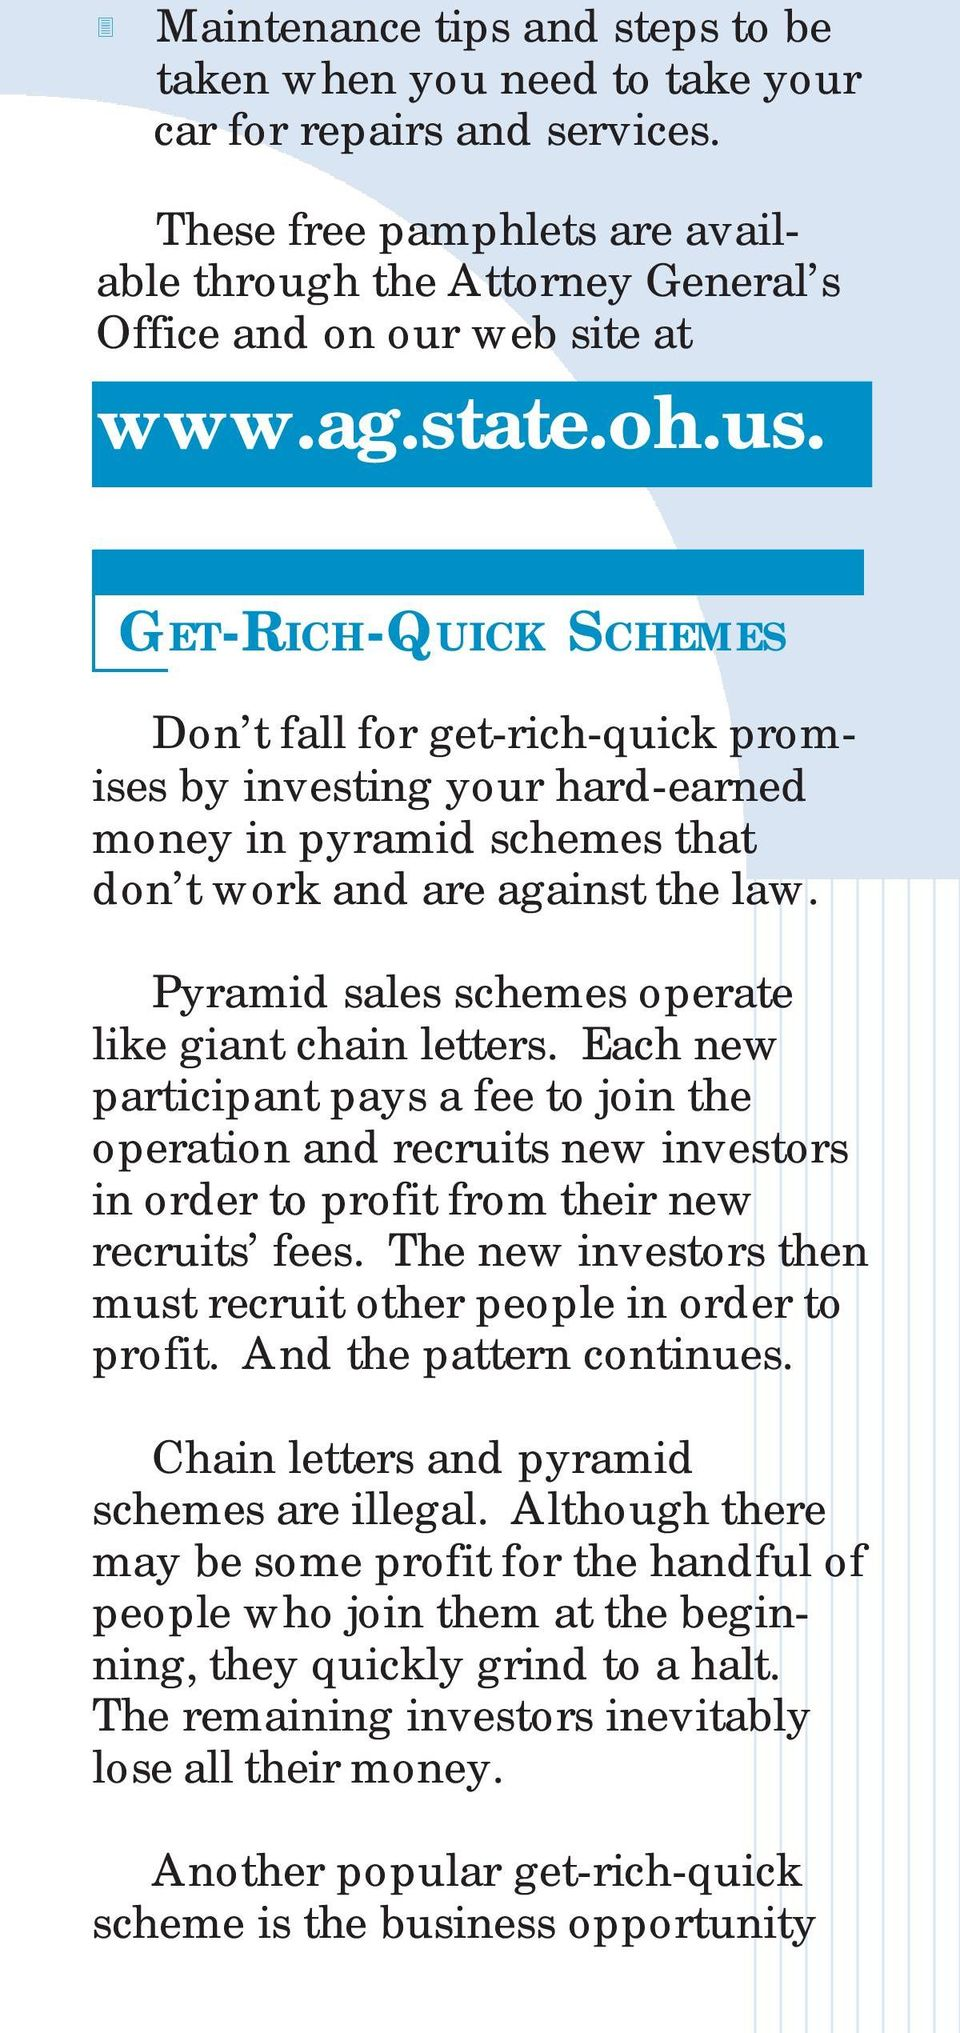 Pyramid sales schemes operate like giant chain letters. Each new participant pays a fee to join the operation and recruits new investors in order to profit from their new recruits fees.